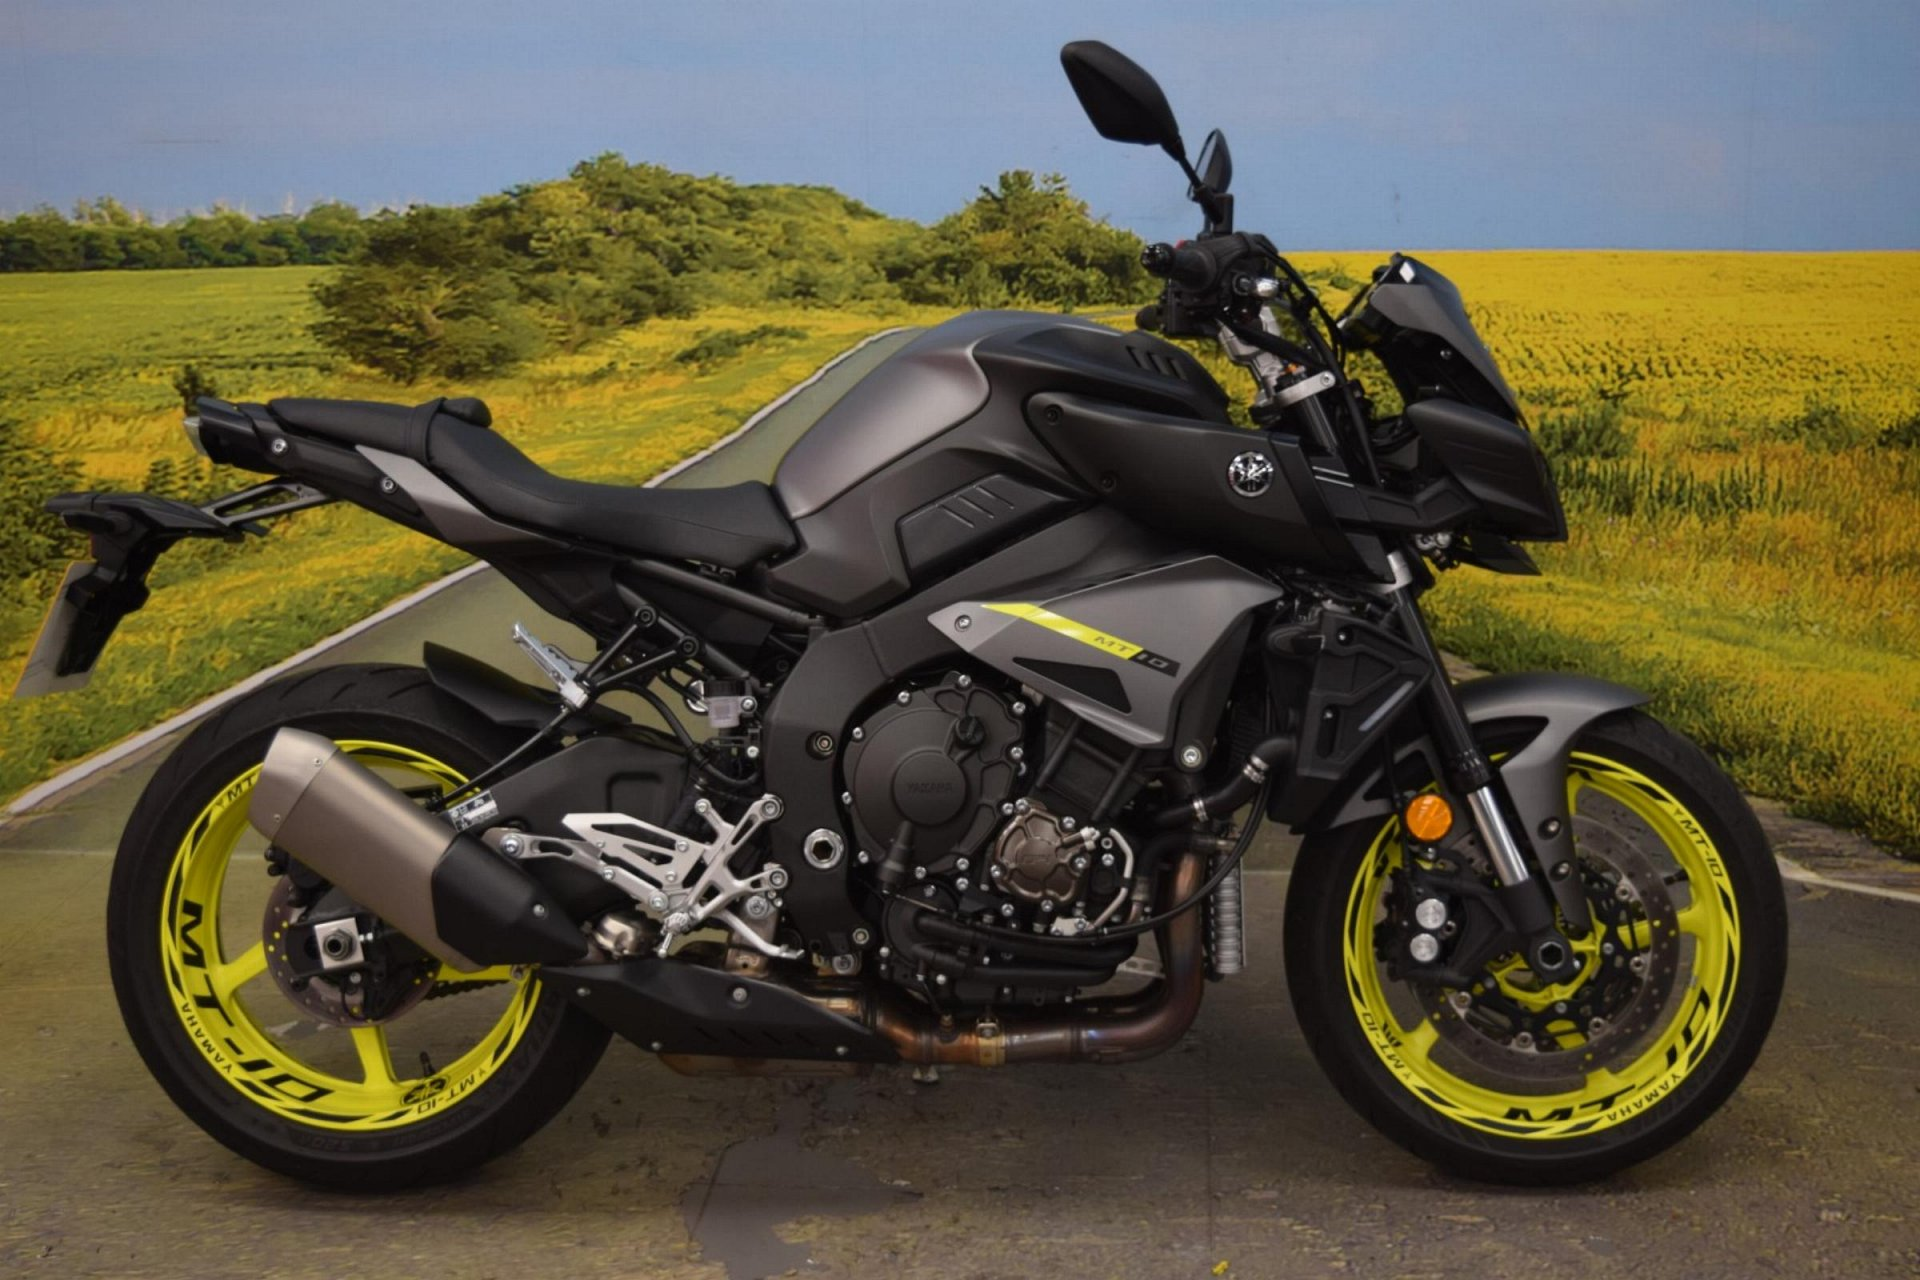 2018 Yamaha MT 10 for sale in Staffordshire